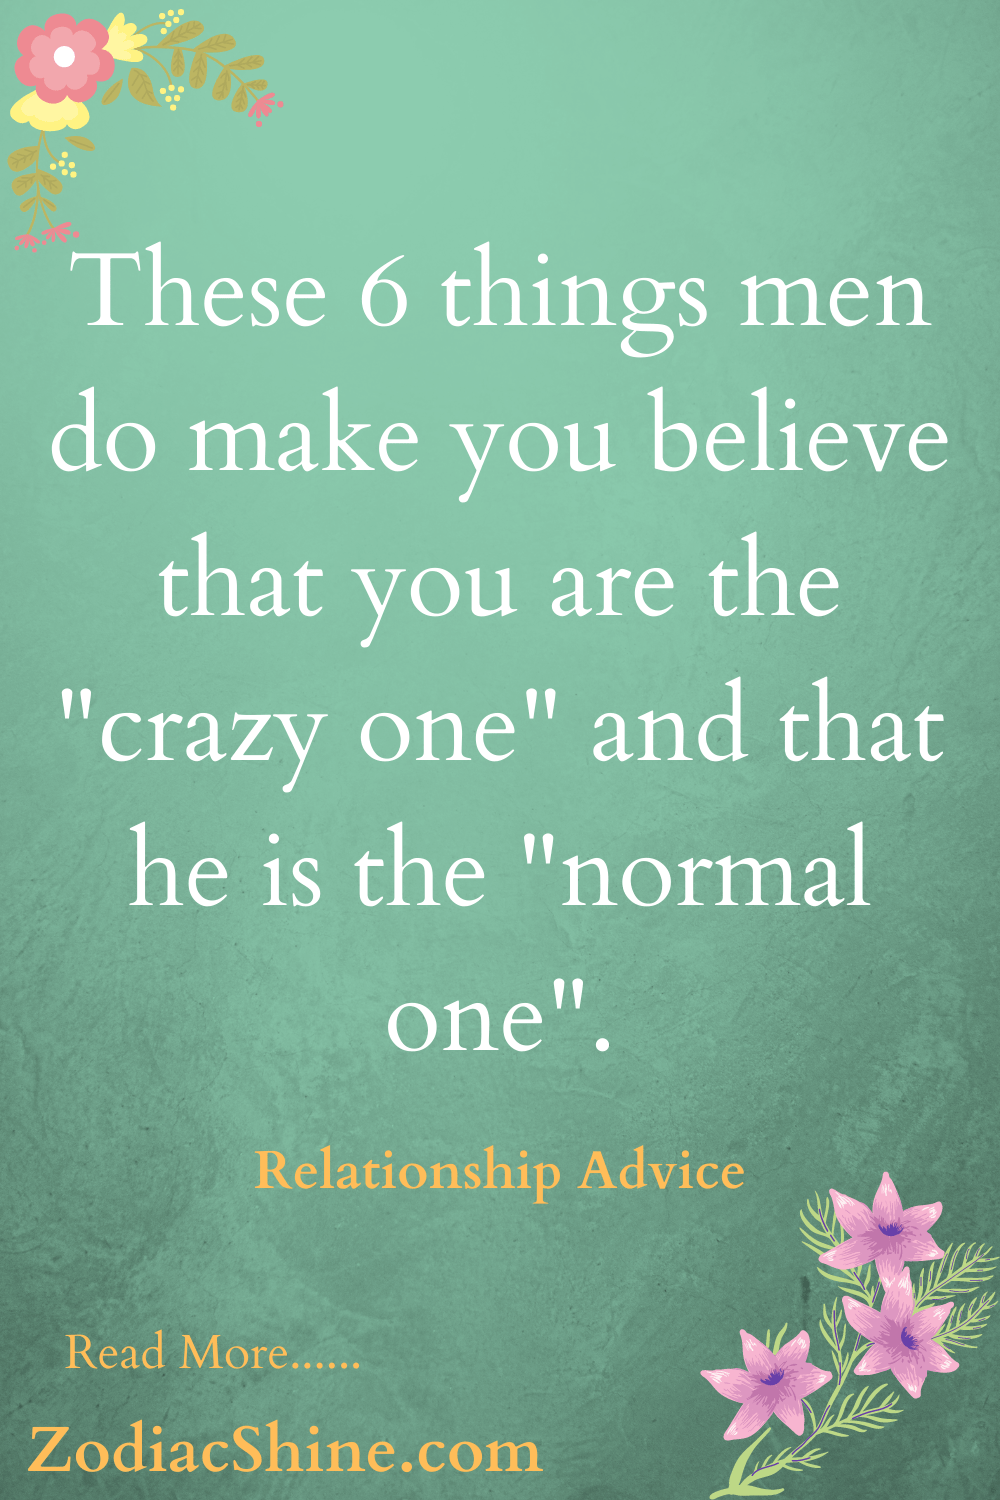 """These 6 things men do make you believe that you are the """"crazy one"""" and that he is the """"normal one""""."""